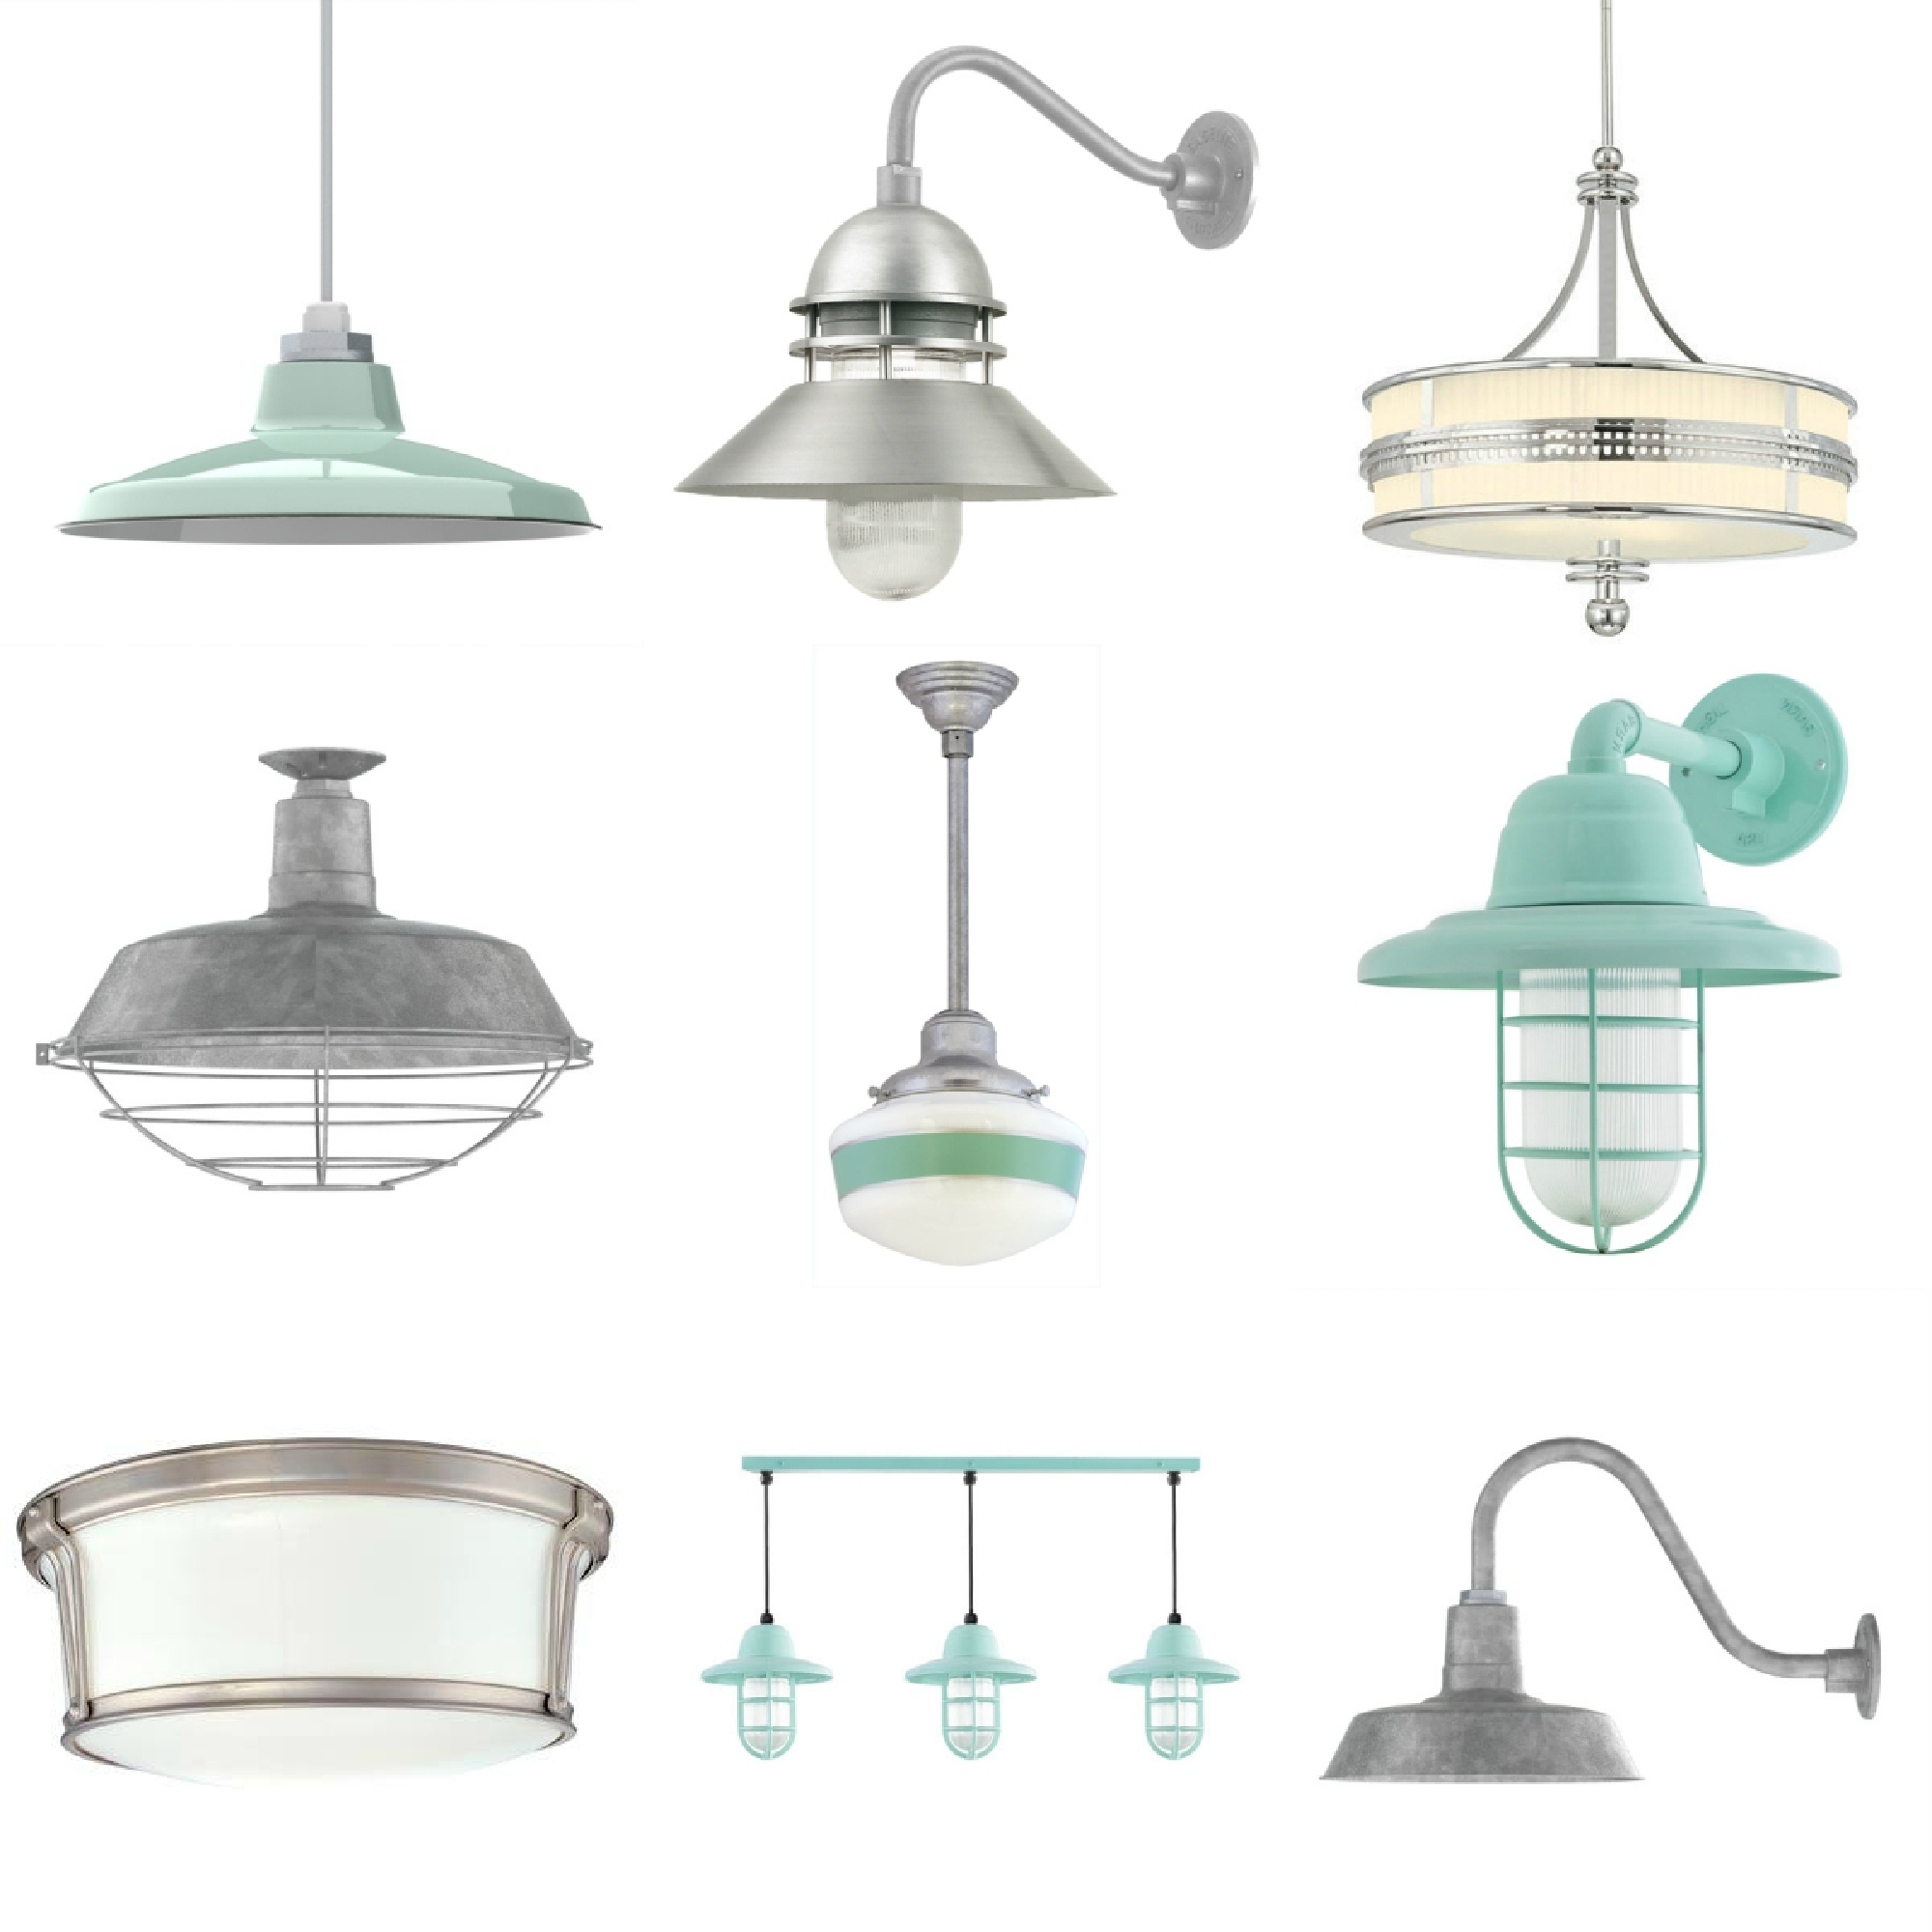 Widely Used Galvanized Outdoor Ceiling Lights Inside Ceiling Lights : Comfy Barn Ceiling Light Fixtures , Antique Barn (View 13 of 20)